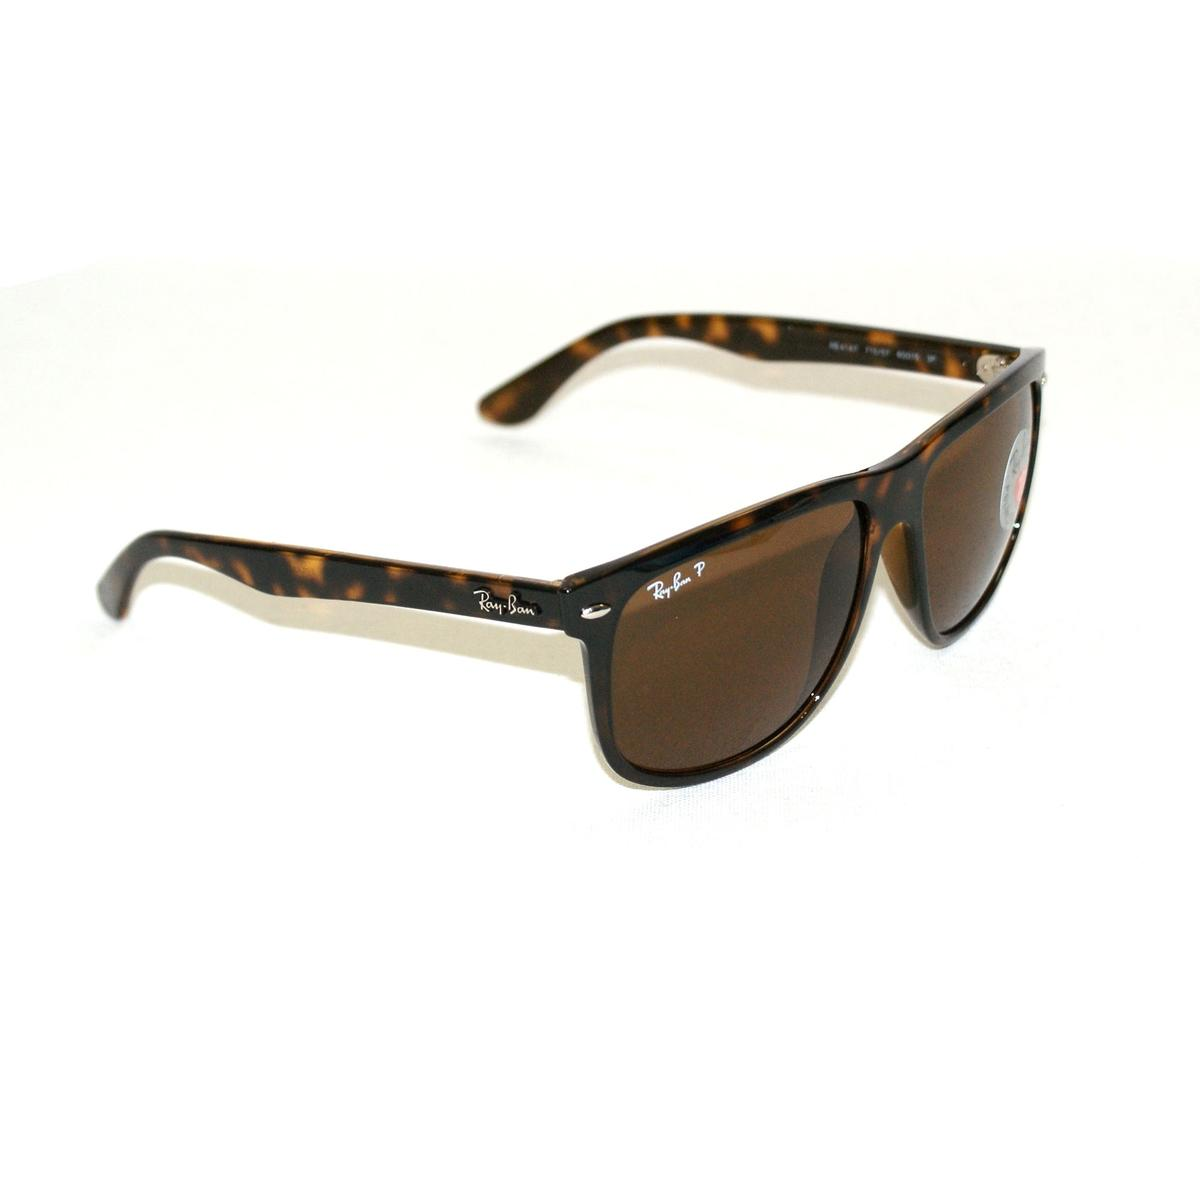 8fb7e41639 Ray Ban Boyfriend Sunglasses Polarized Womens Aviators Rayban ...